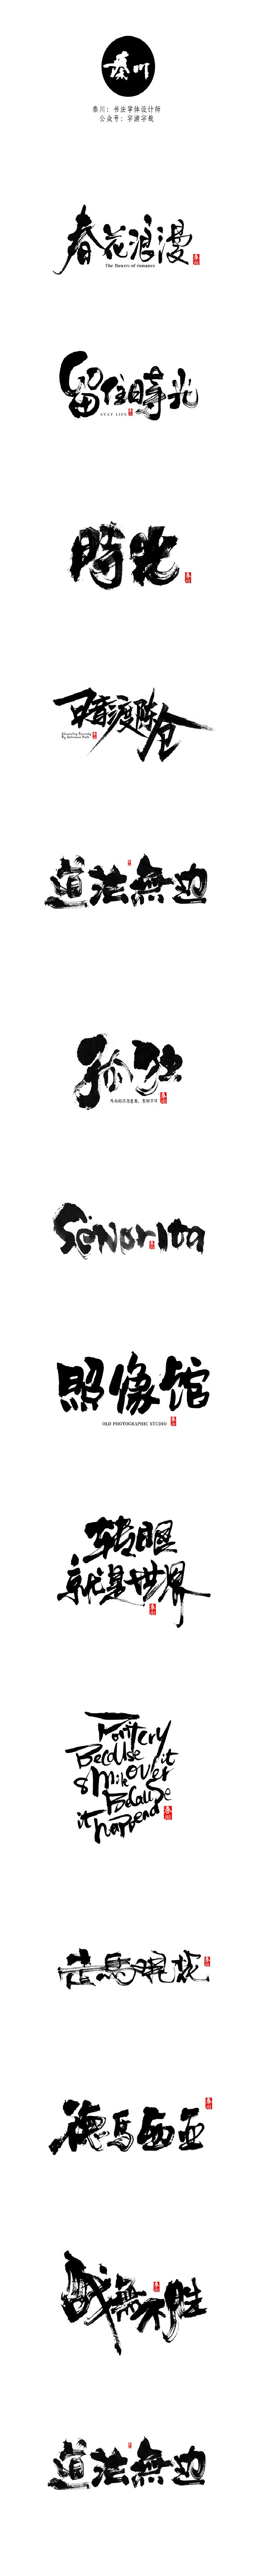 chinesefontdesign.com 2016 07 01 19 49 11 14 Super Cool traditional Chinese brush calligraphy font logo